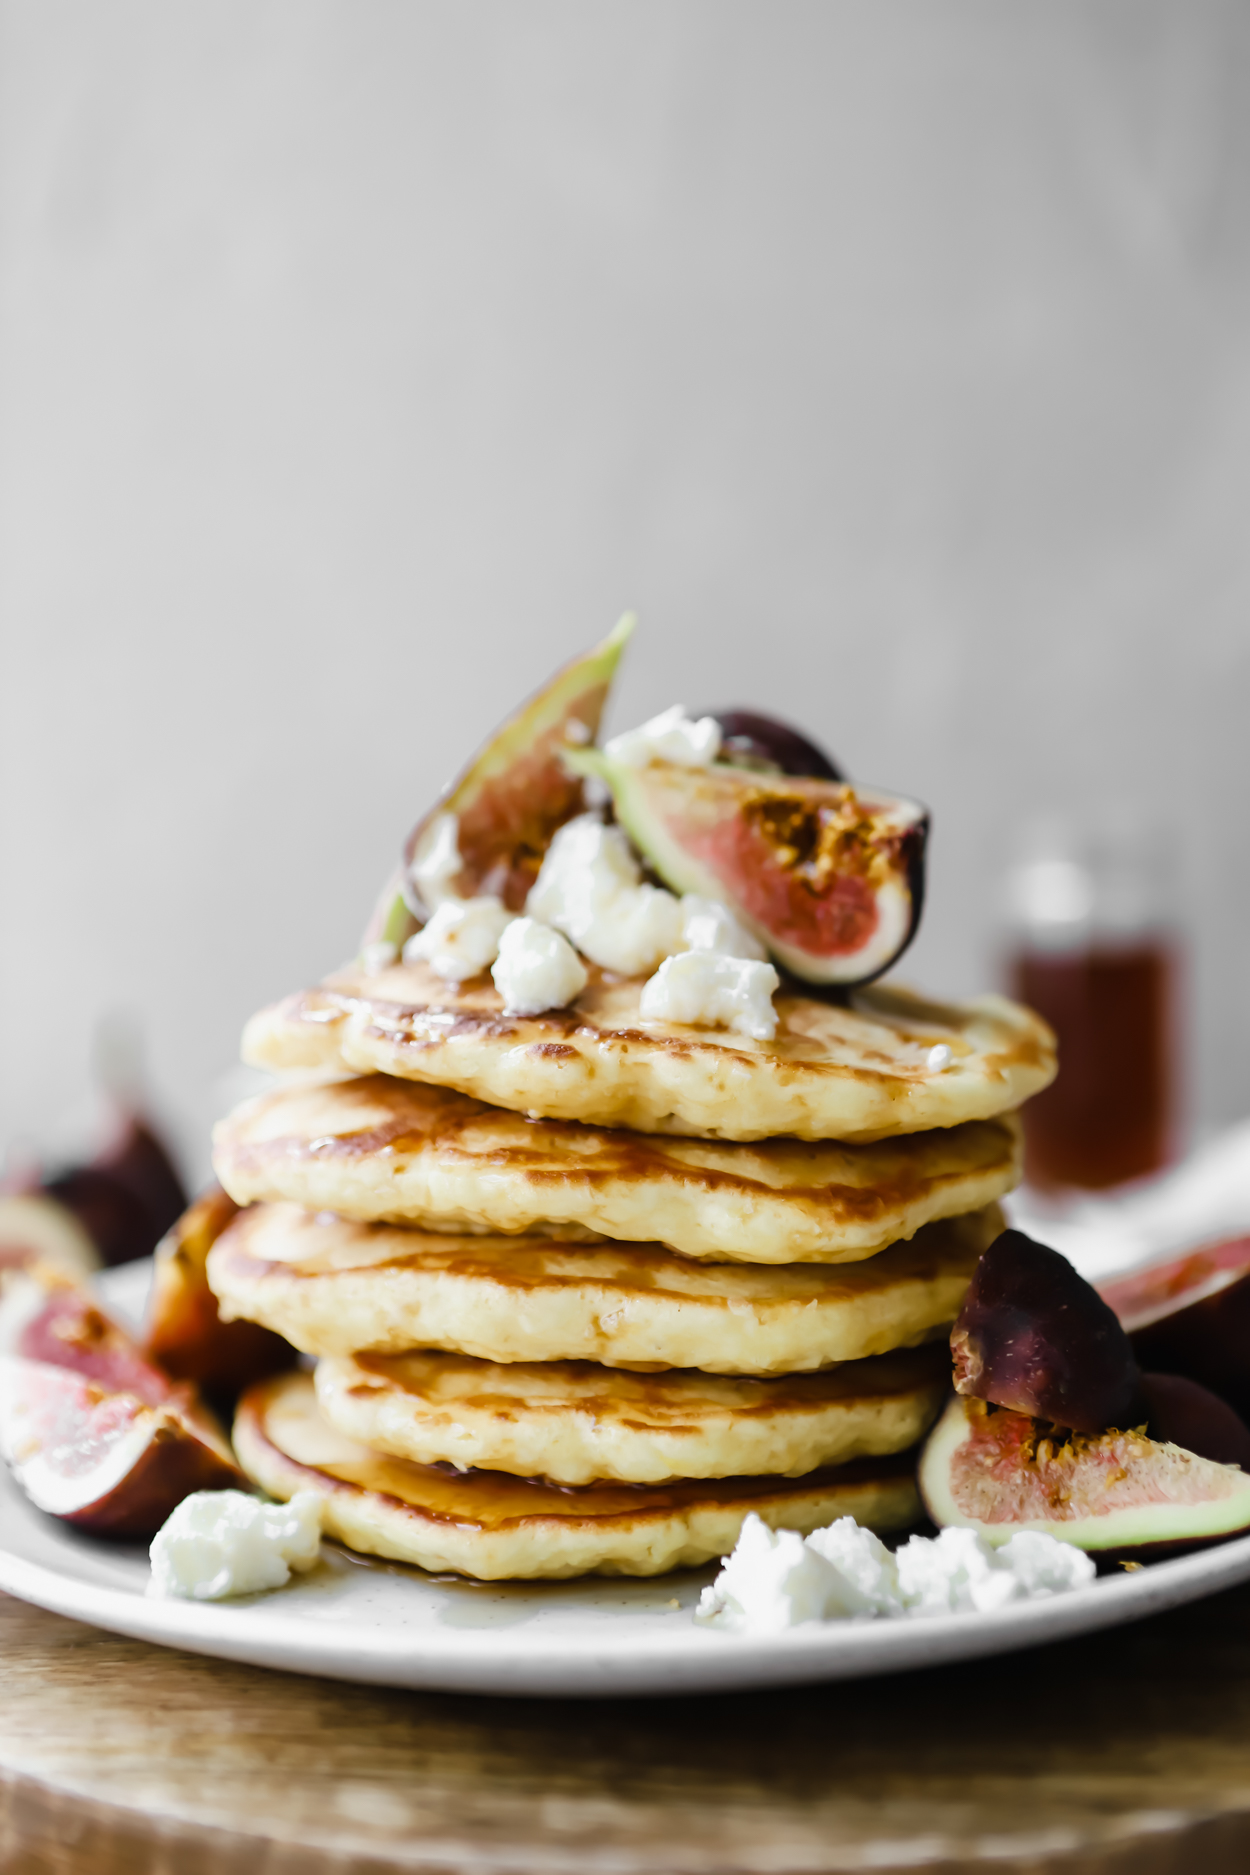 A stack of homemade fluffy pancakes on a plate with fresh figs and ricotta cheese